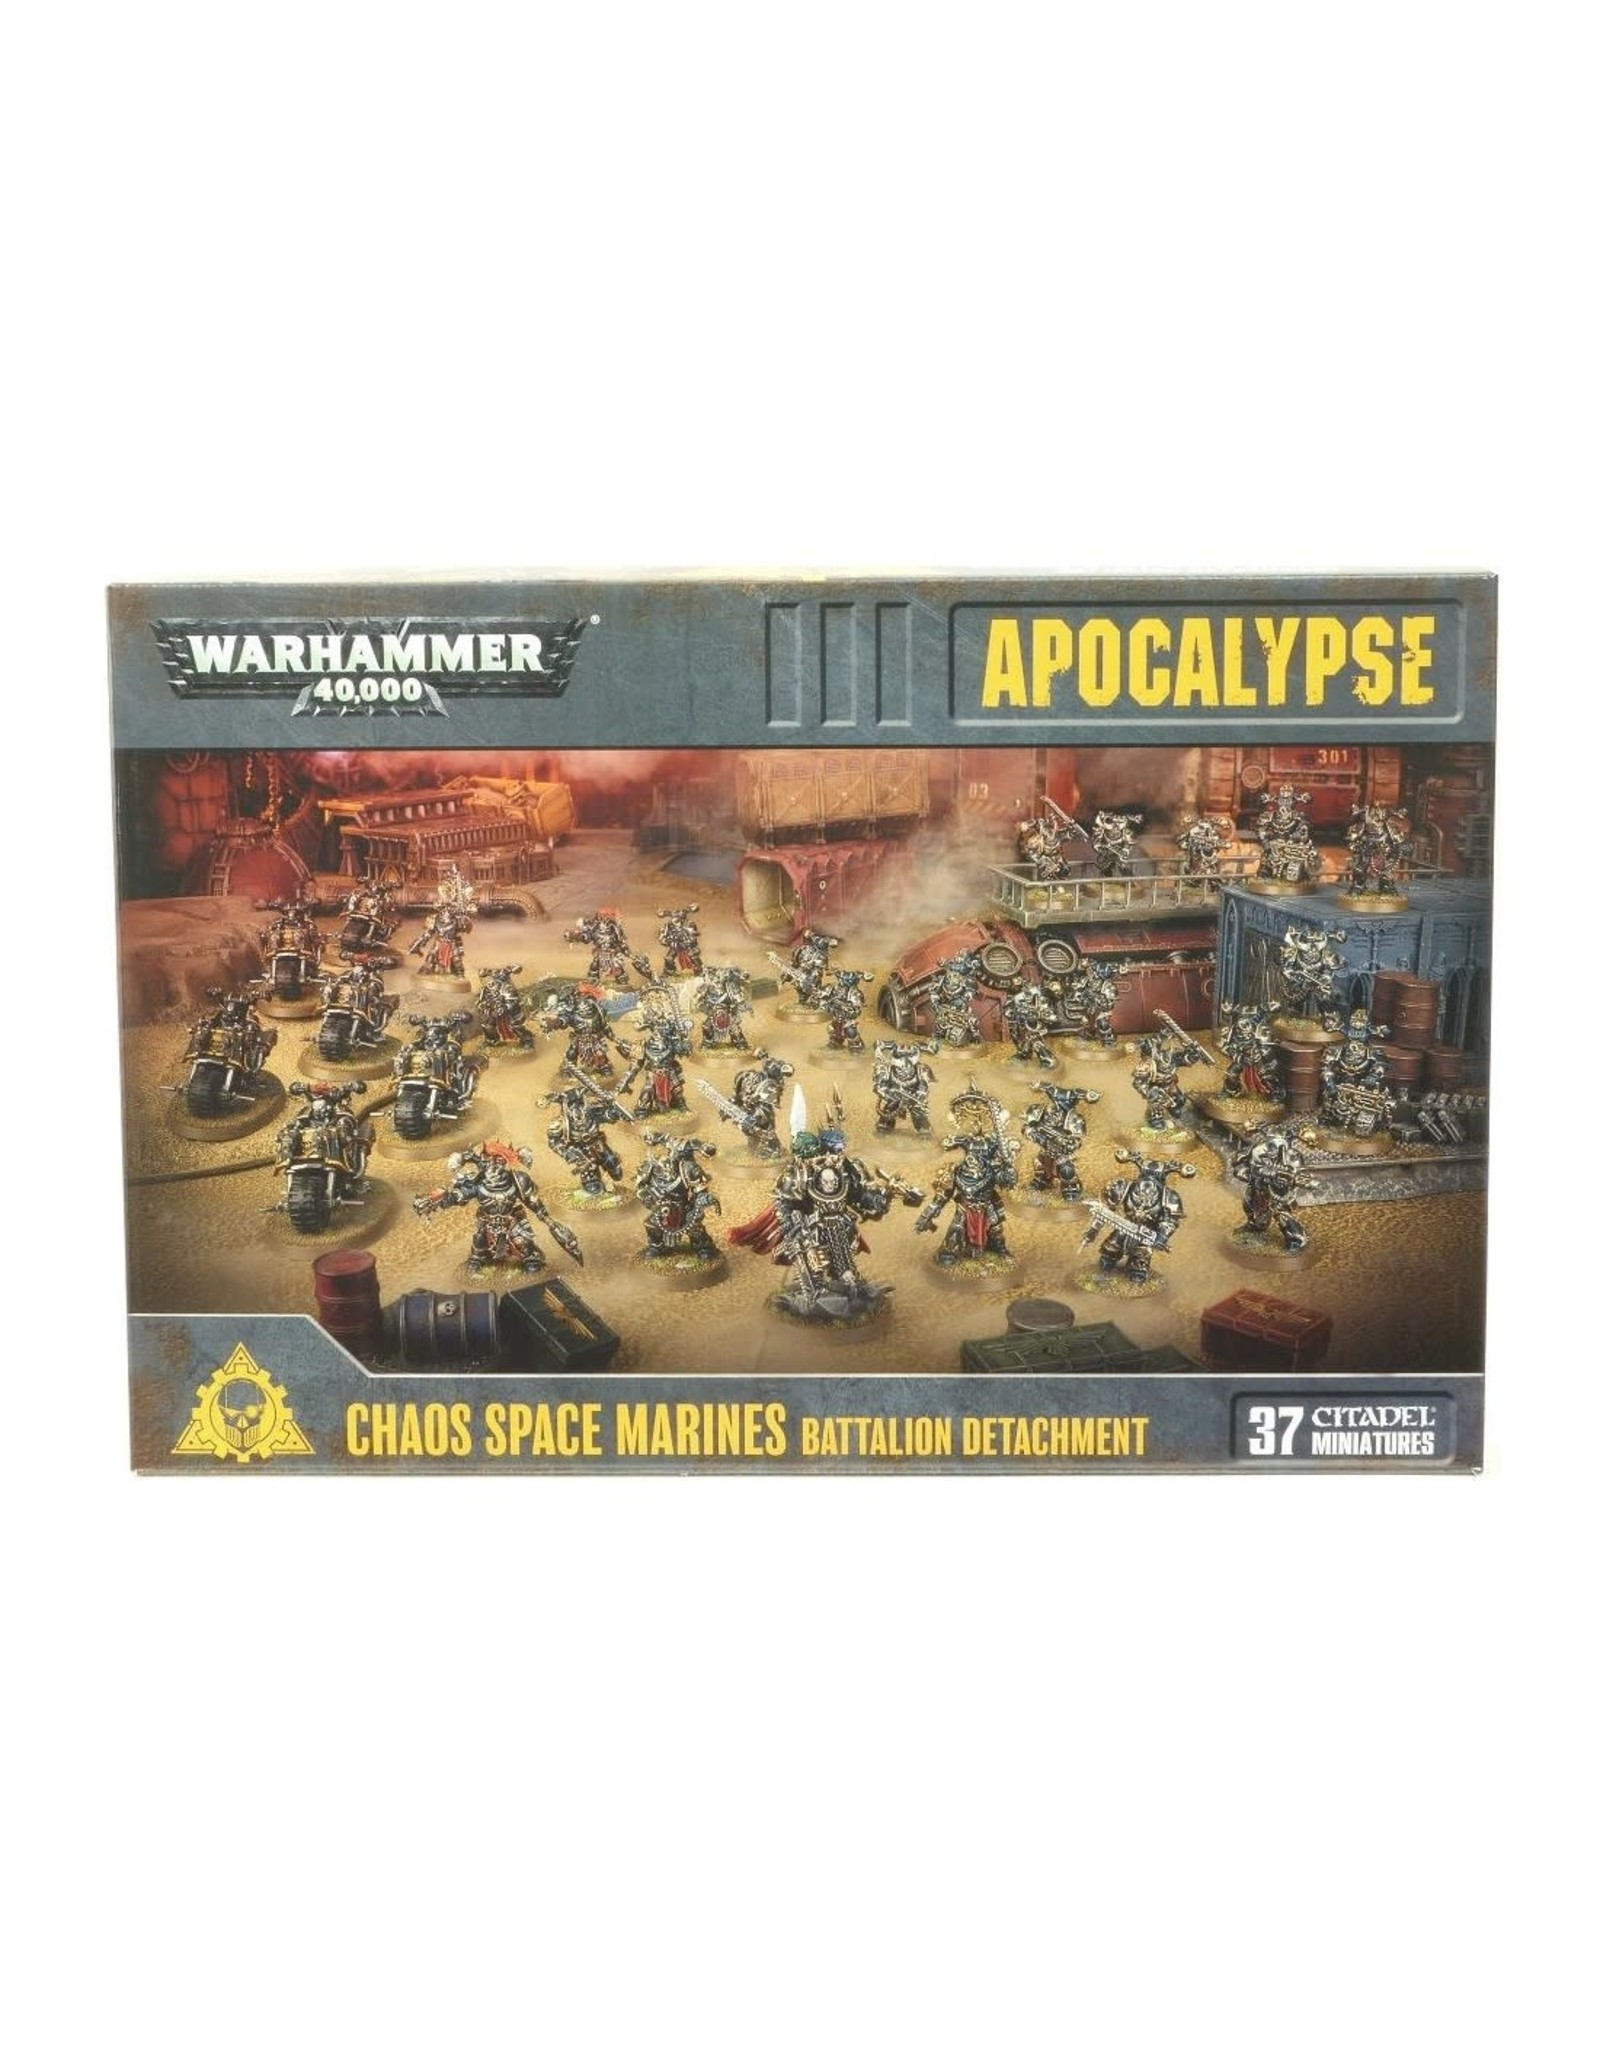 Choas Space Marines Battalion Detachment (40K)